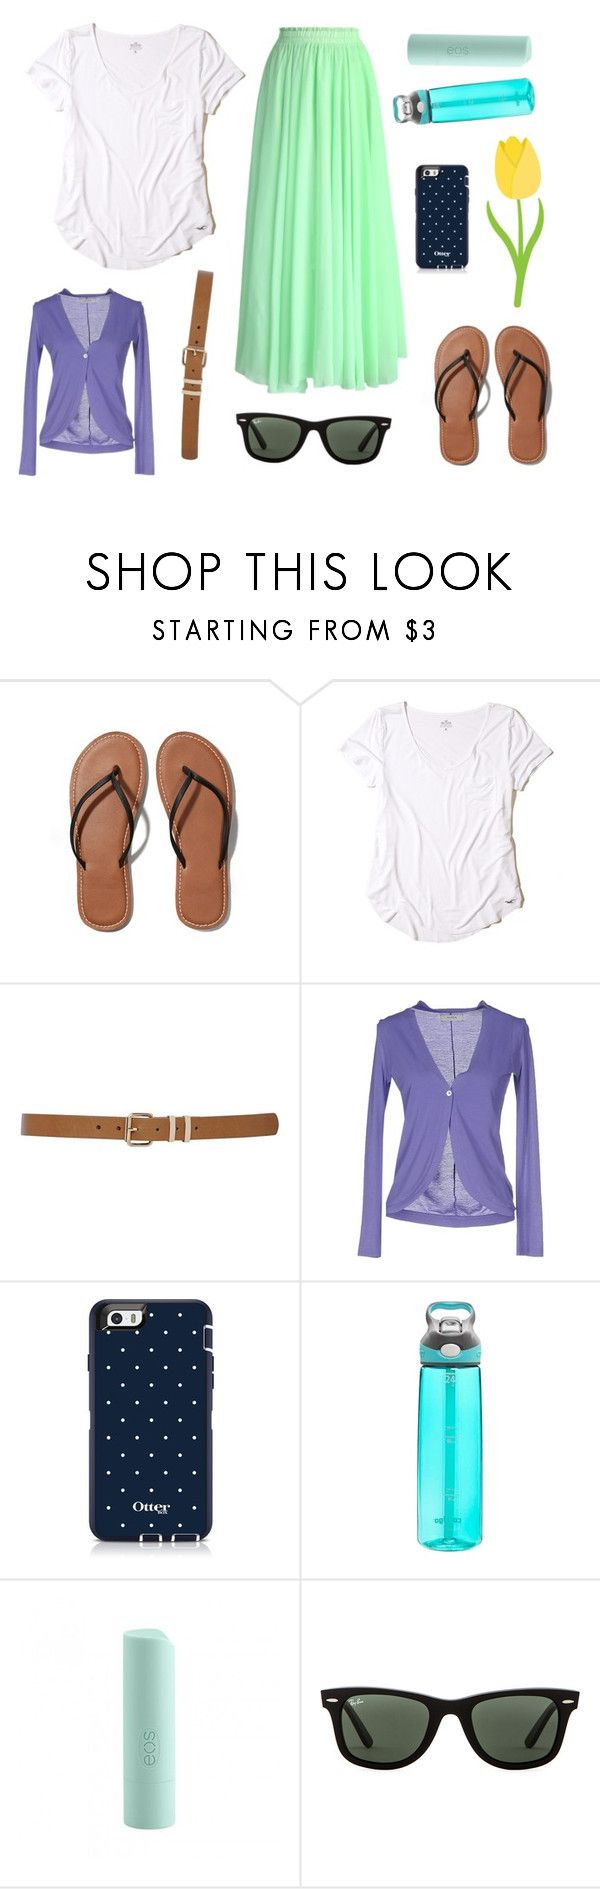 """""""Date Night"""" by im-a-jeans-and-boots-kinda-girl ❤ liked on Polyvore featuring Abercrombie & Fitch, Hollister Co., M&Co, Alpha Studio, Contigo, Eos, Ray-Ban and Chicwish"""